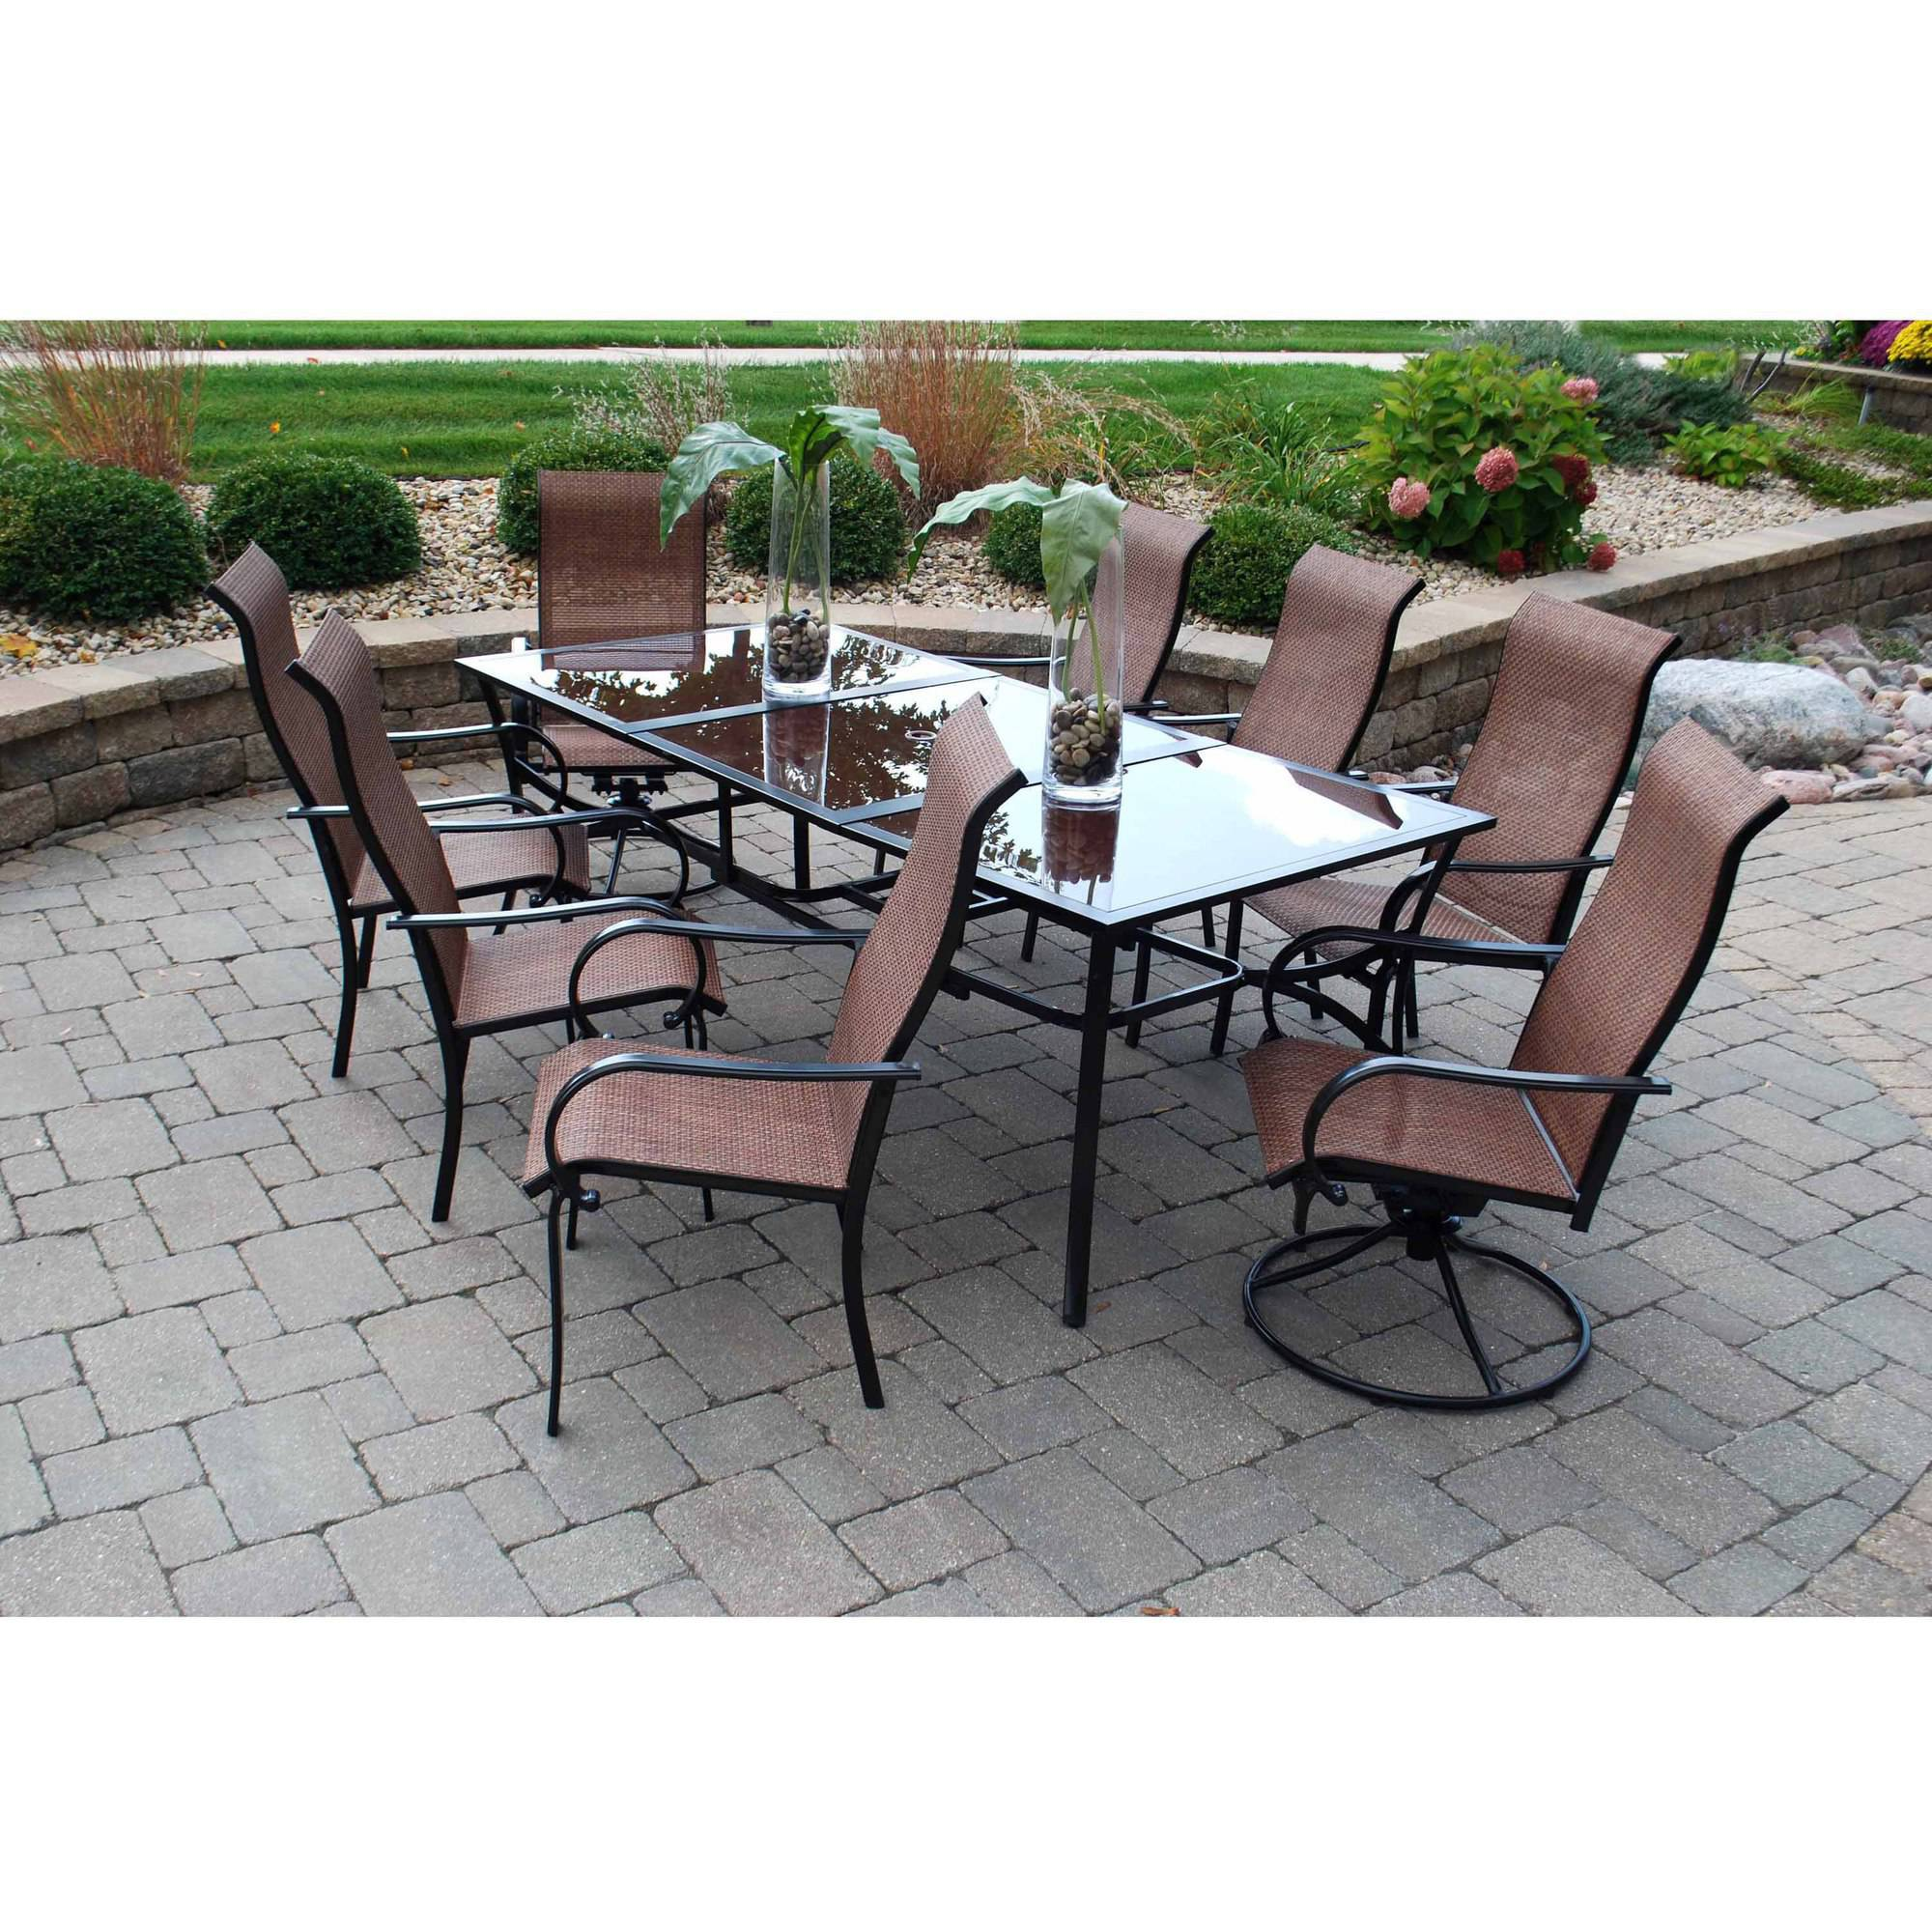 Cambria 9 Piece Patio Dining Set, Seats 8